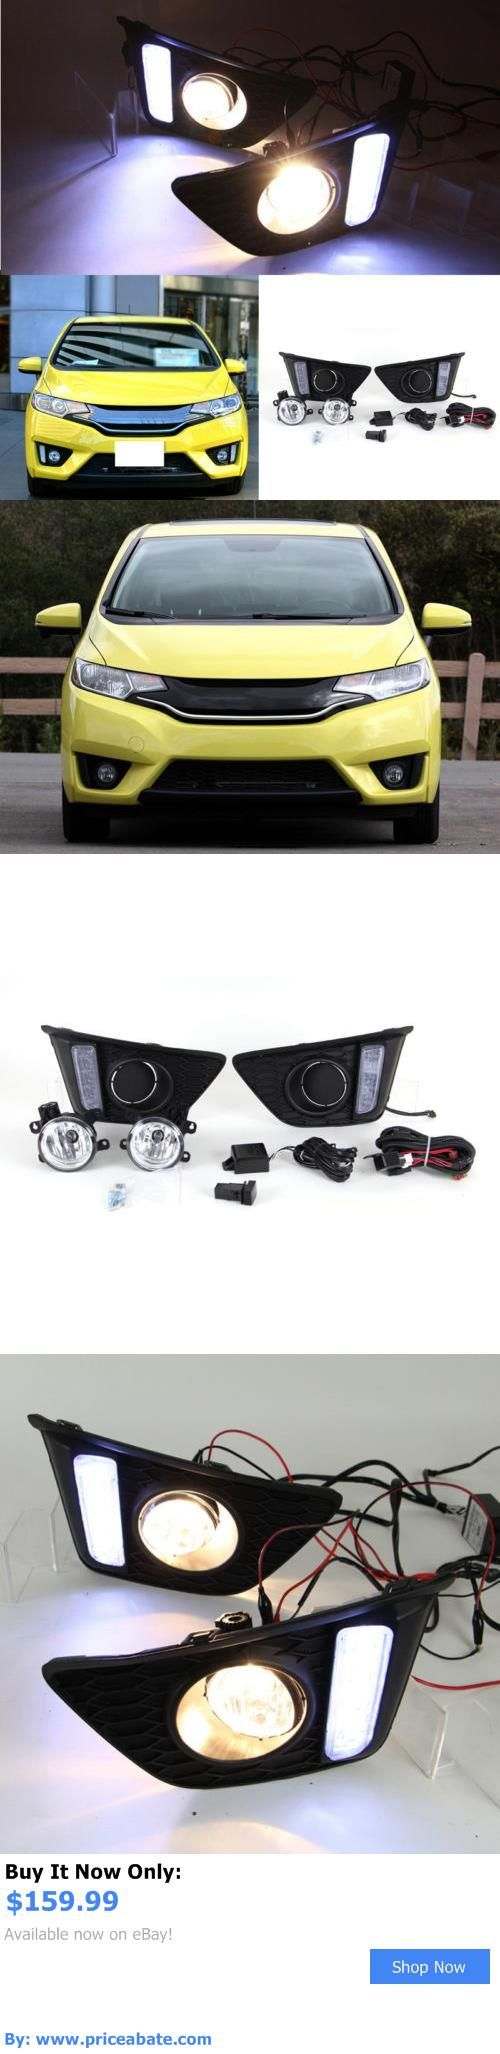 Motors Parts And Accessories: Car Bumper Led Fog Lamp+Daytime Running Light  Drl For. Honda FitMotor ...